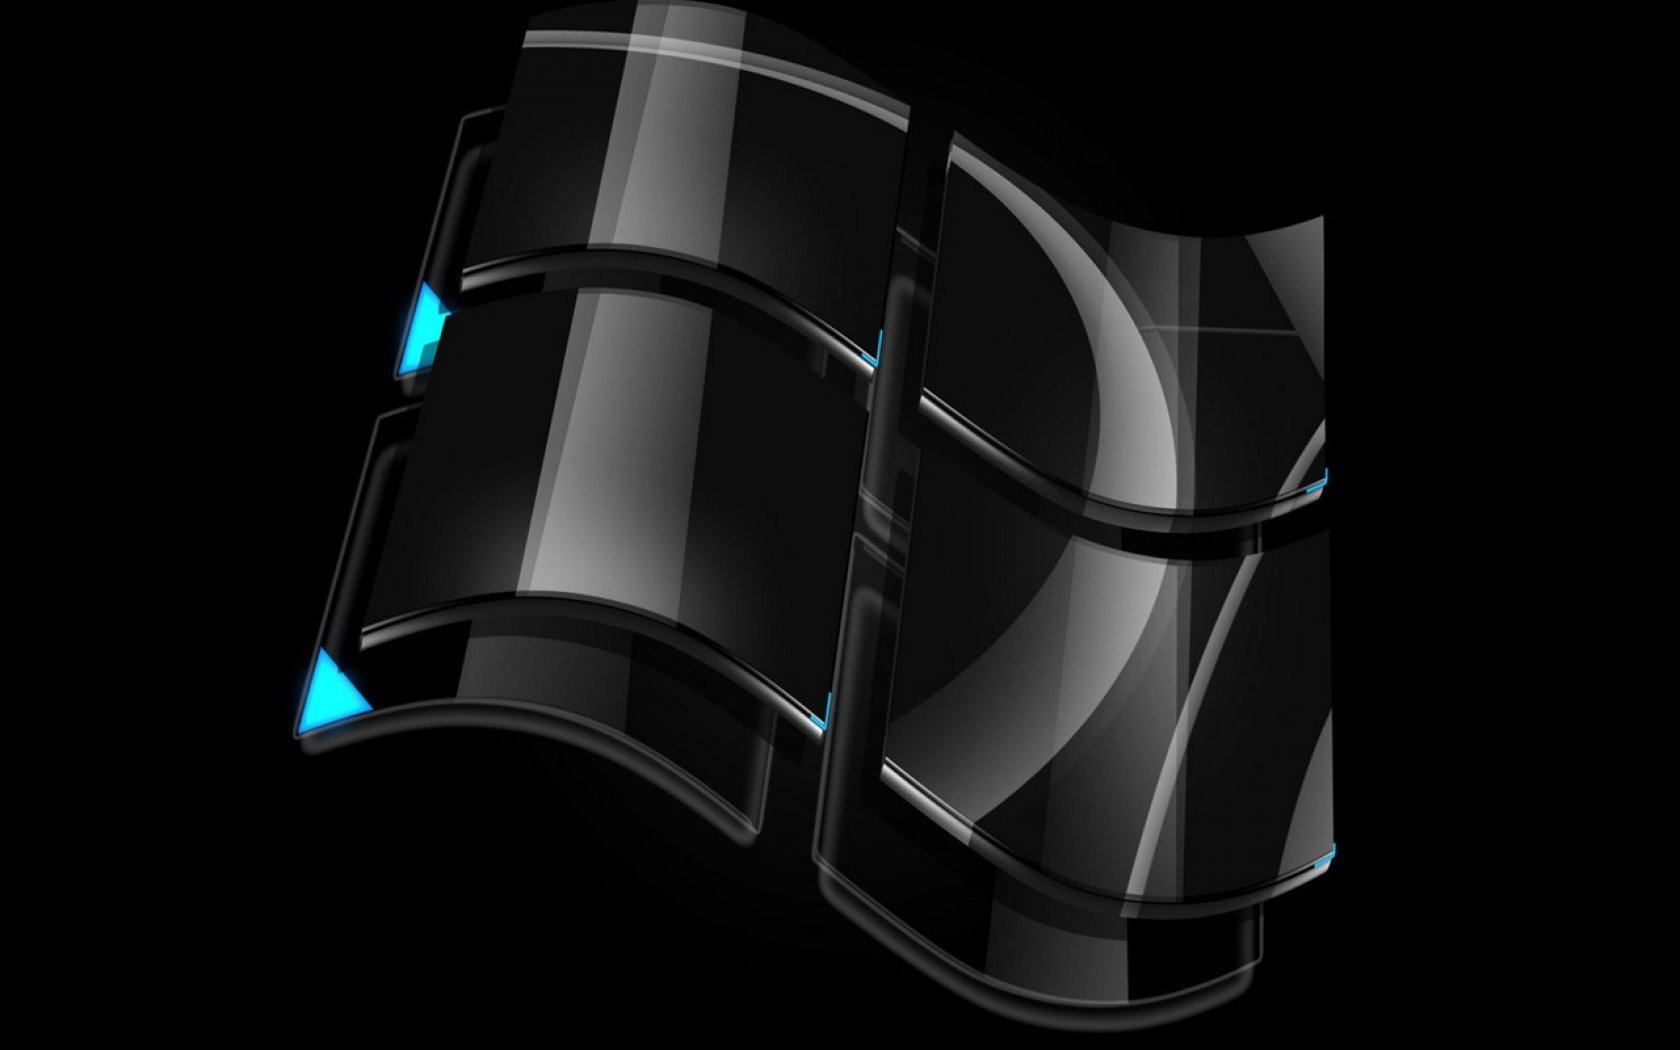 Обои Windows black 1680x1050